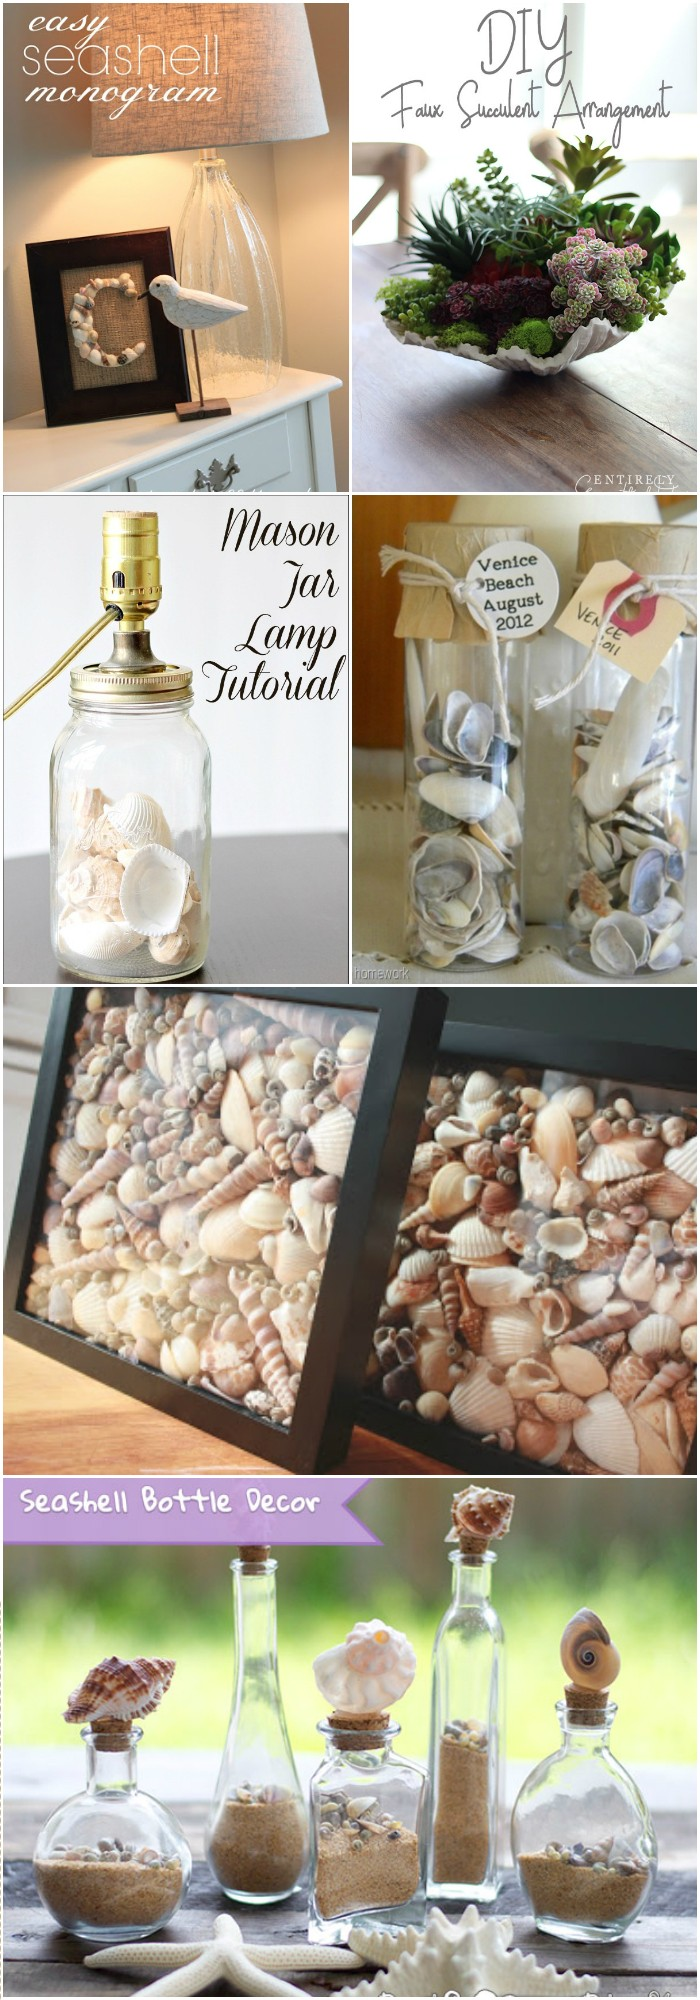 Stunning and creative DIY Seashell Crafts Stunning and Creative DIY Seashell Crafts